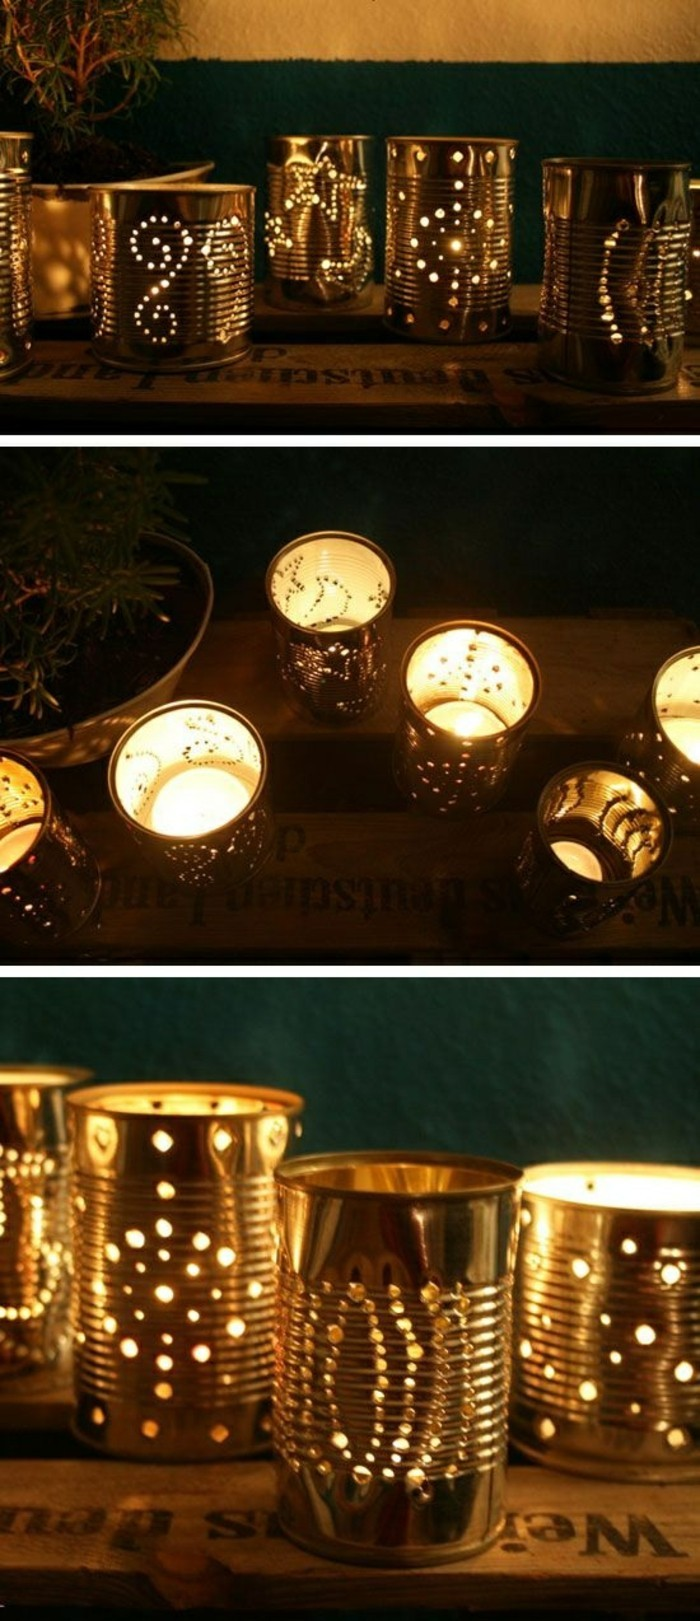 several luminaries made from tin cans with holes forming patterns, small candles placed inside them, close up of the patterns